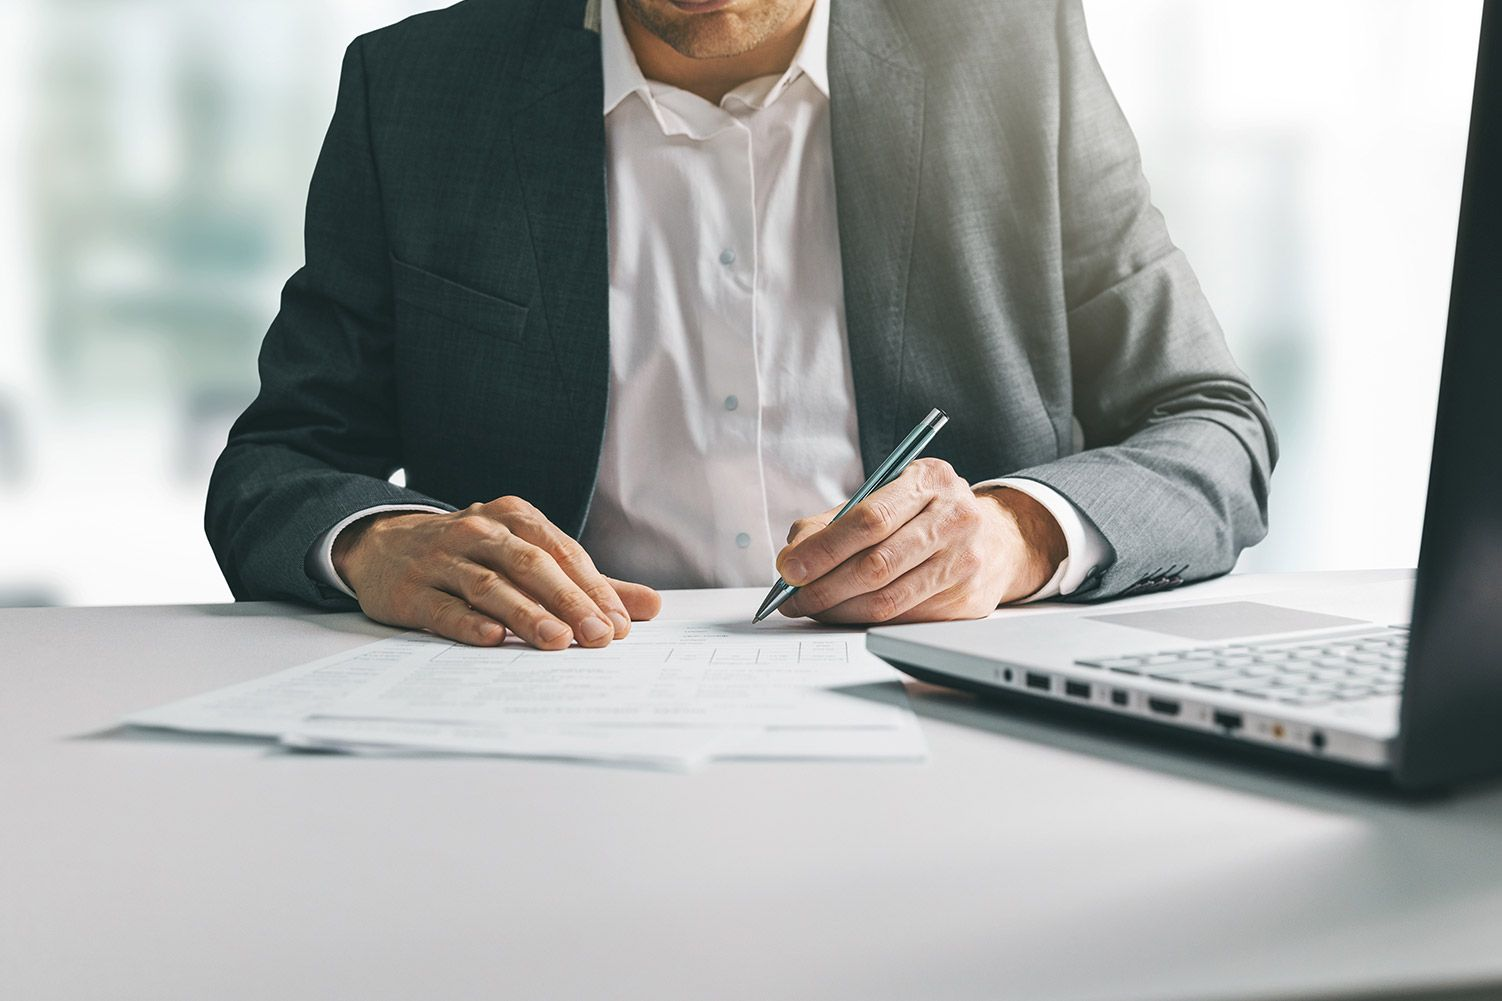 Man in suit writing business papers at desk in office